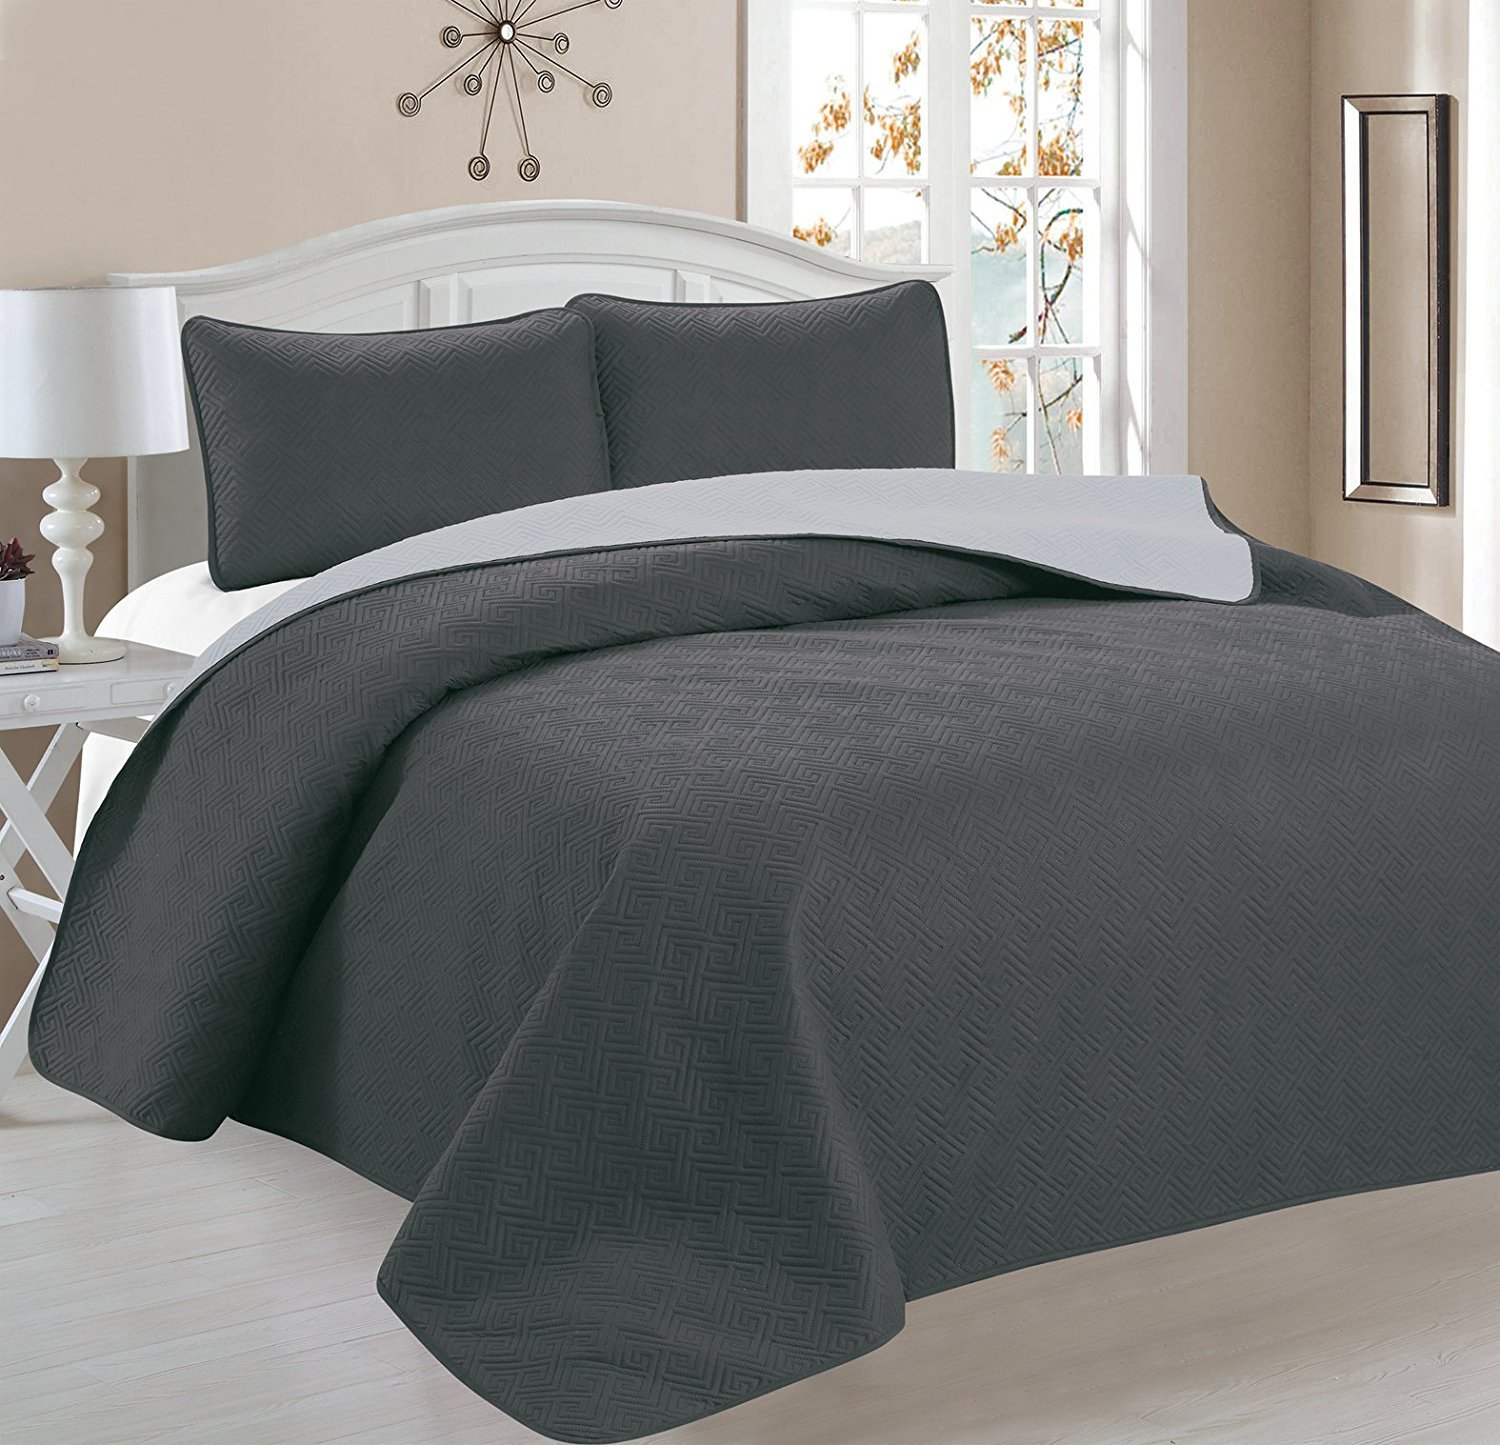 Deluxe Greek Design Reversible 3pc Coverlet Quilt Set BedSpread – FULL/QUEEN Size – Grey / Silver